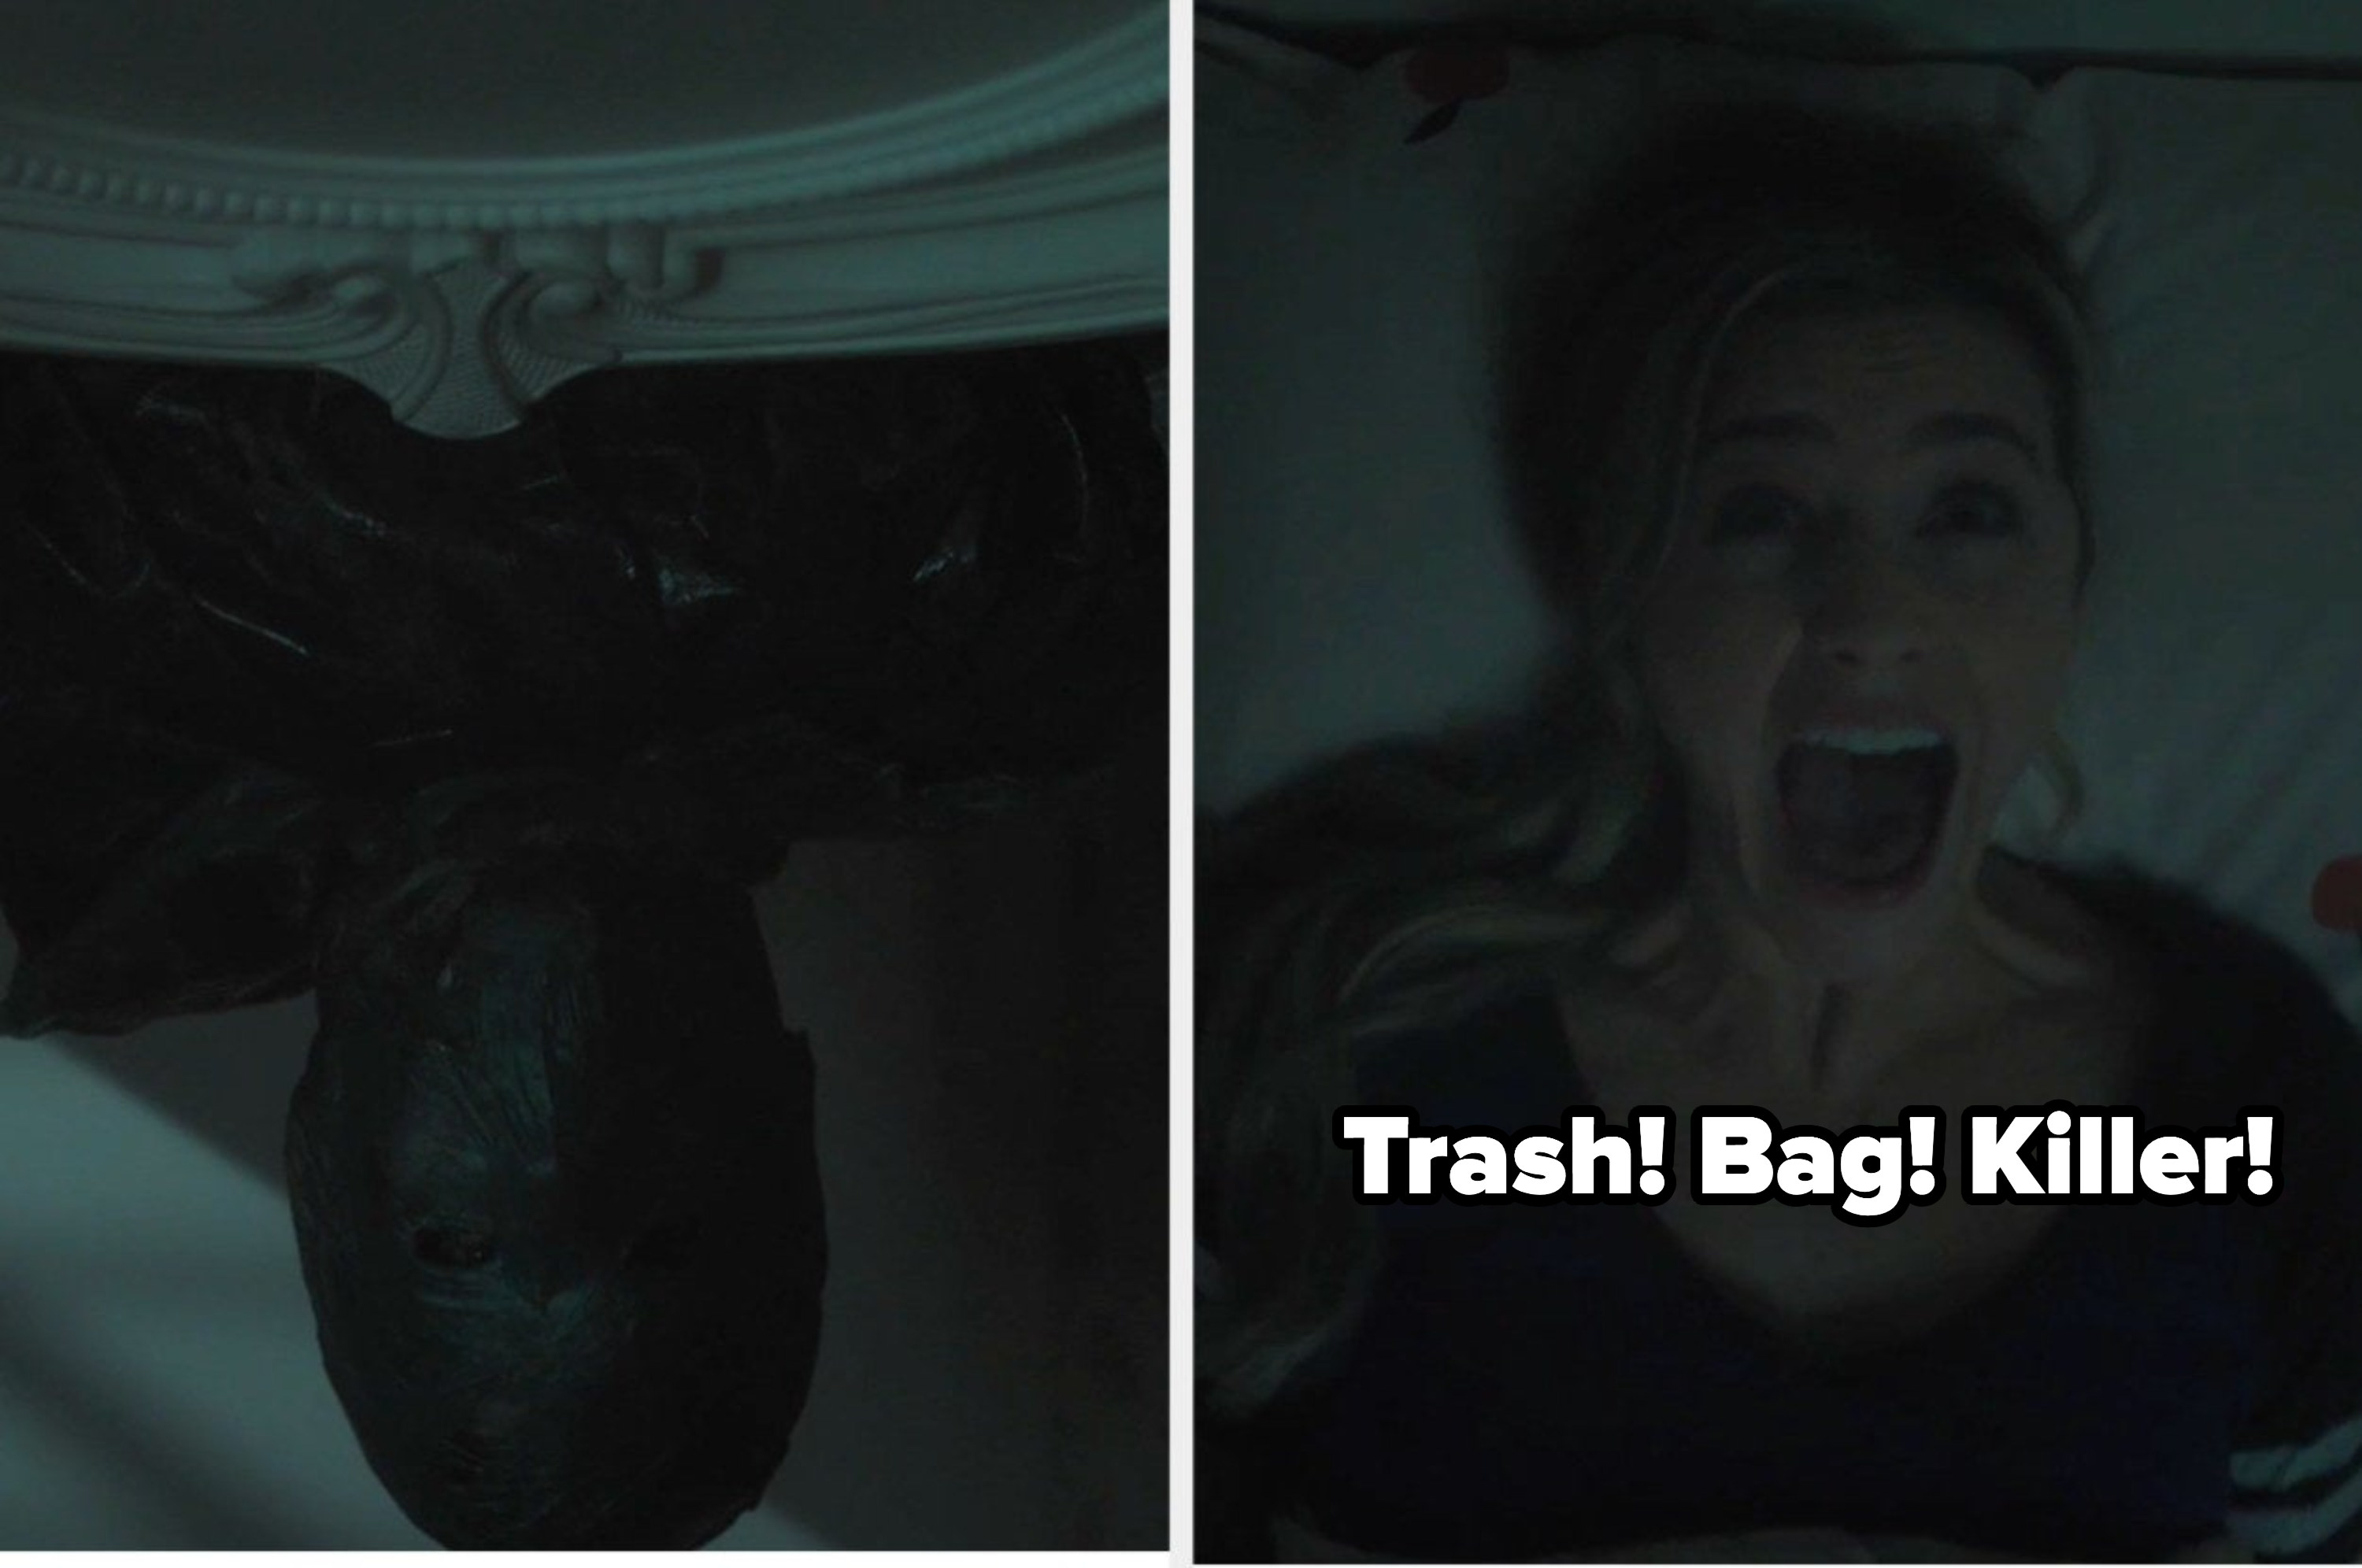 Betty having a nightmare about the trash bag killer with the caption trash bag killer